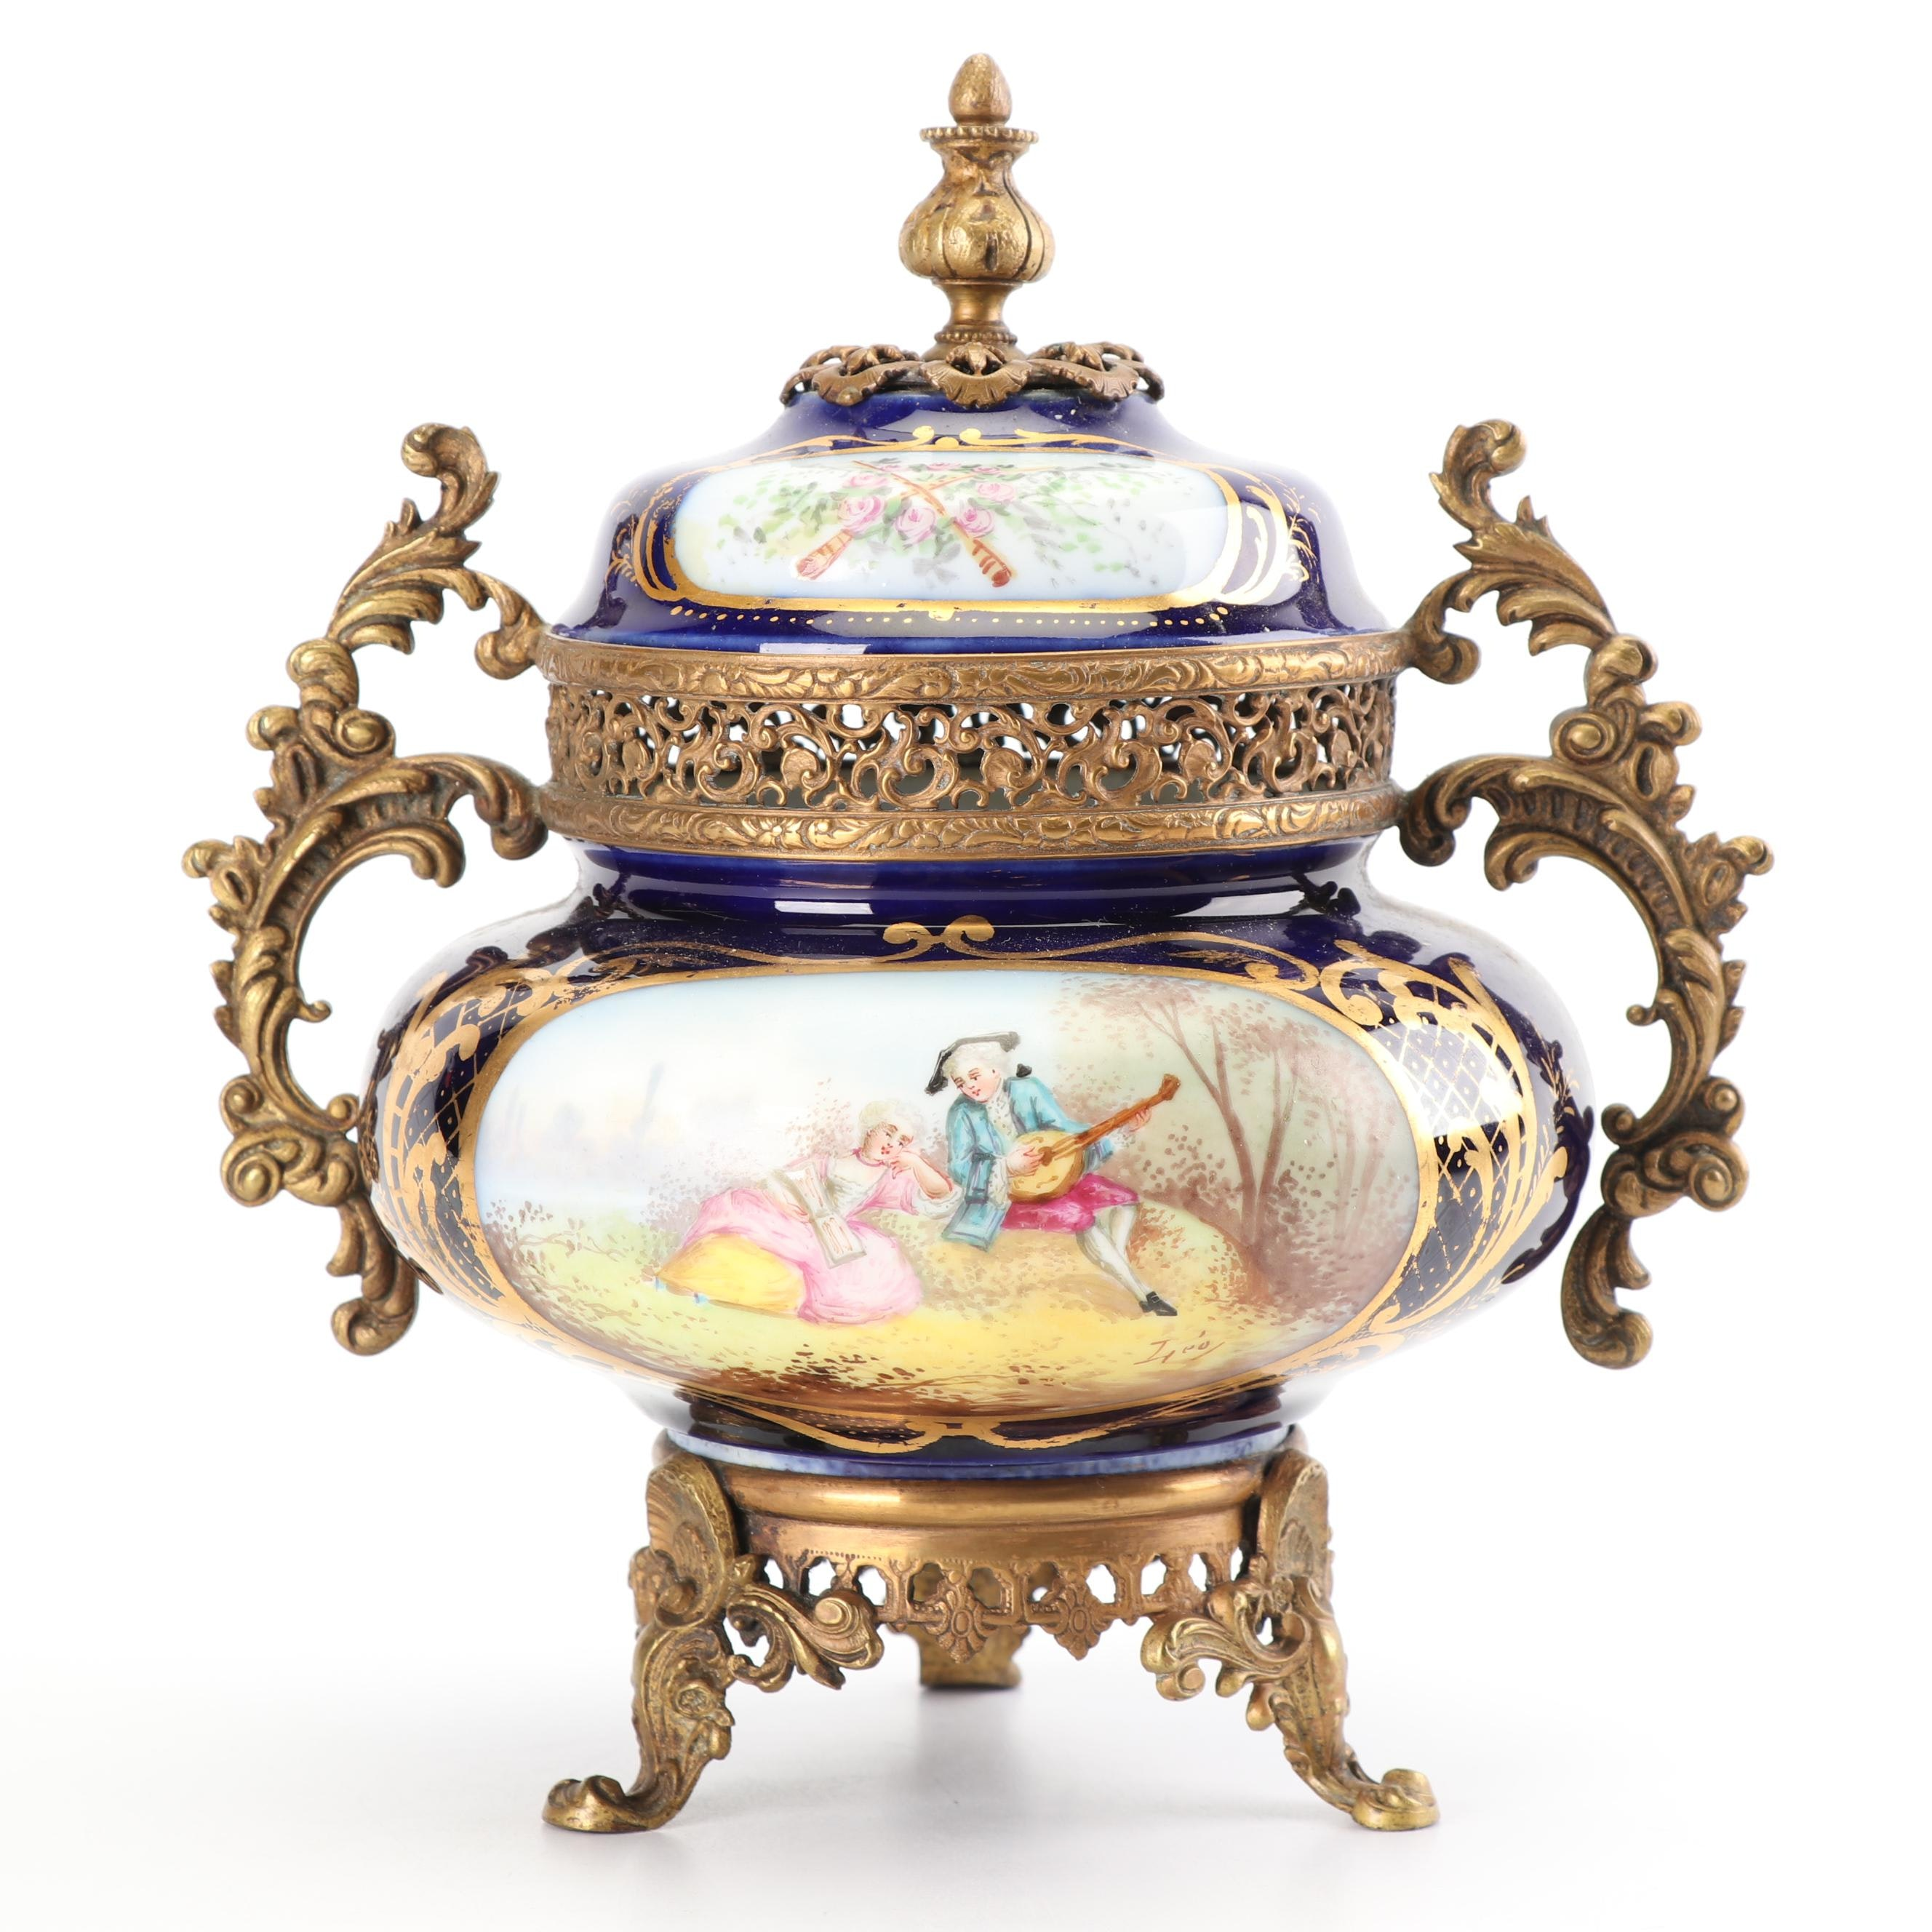 Sevres Style Ormolu Mounted Porcelain Urn with Signed Hand-Painted Decoration